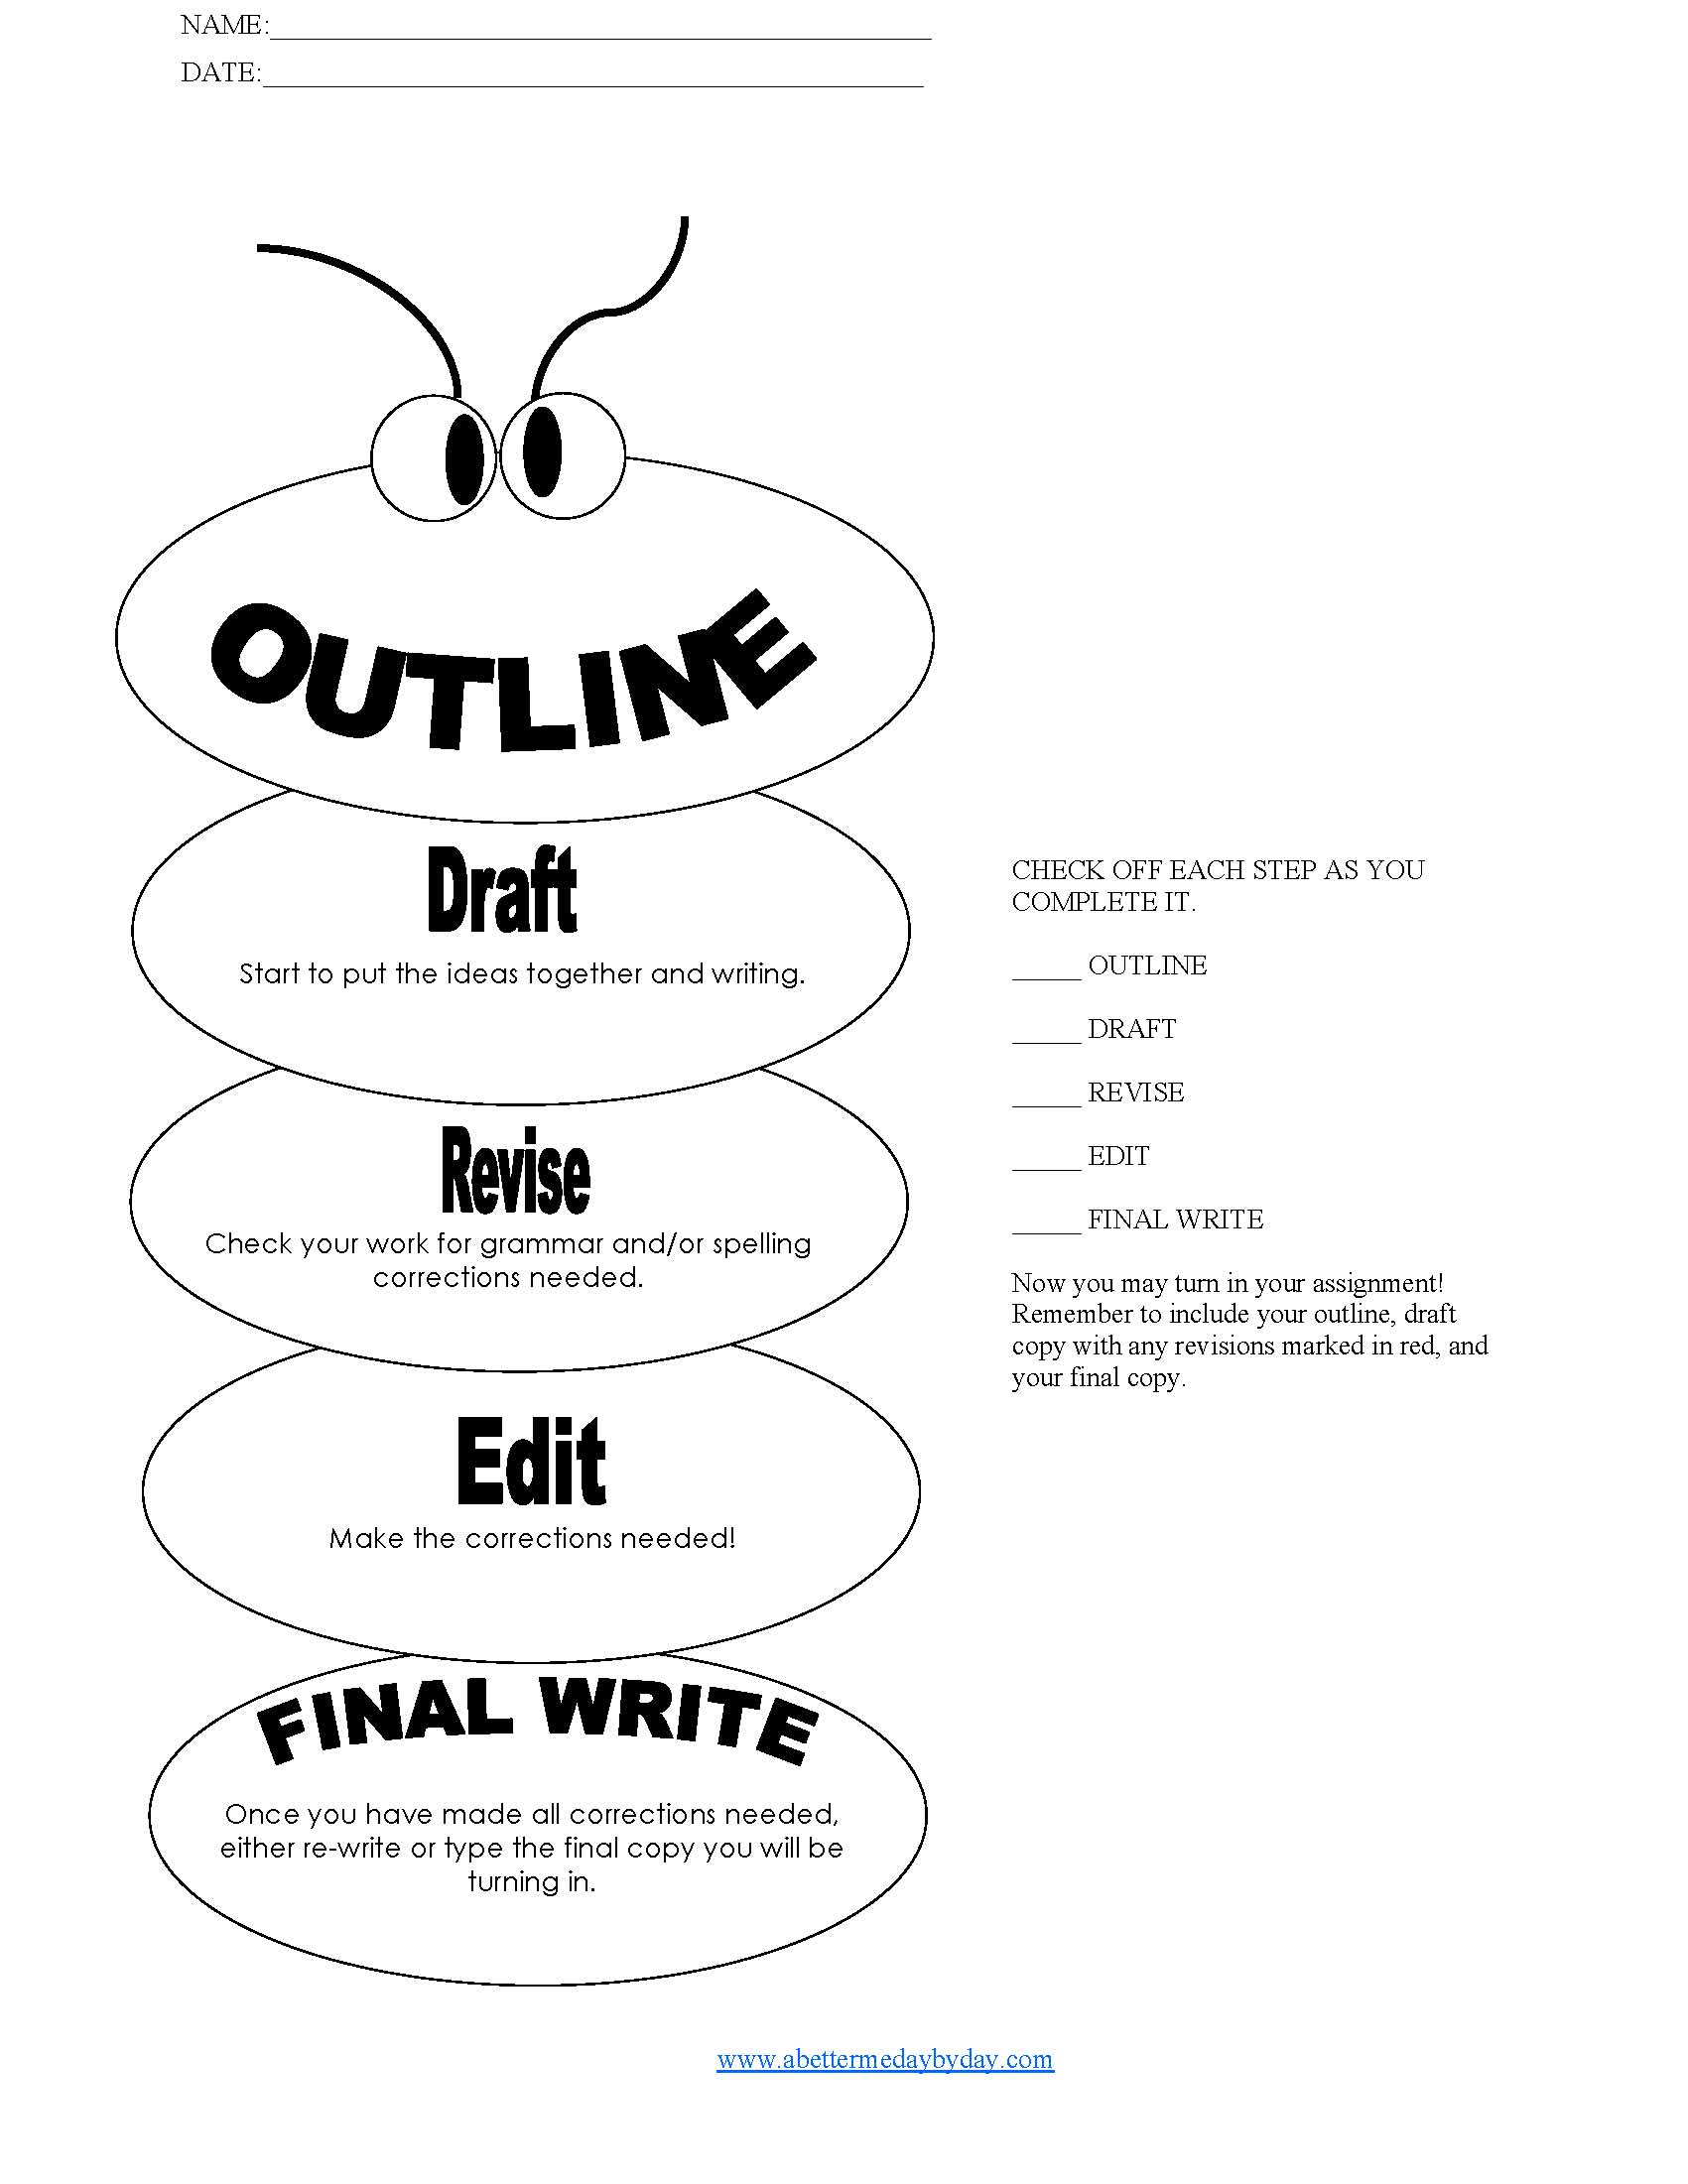 How To Make Outline For Essay Writing Outlines For Essays Ideas